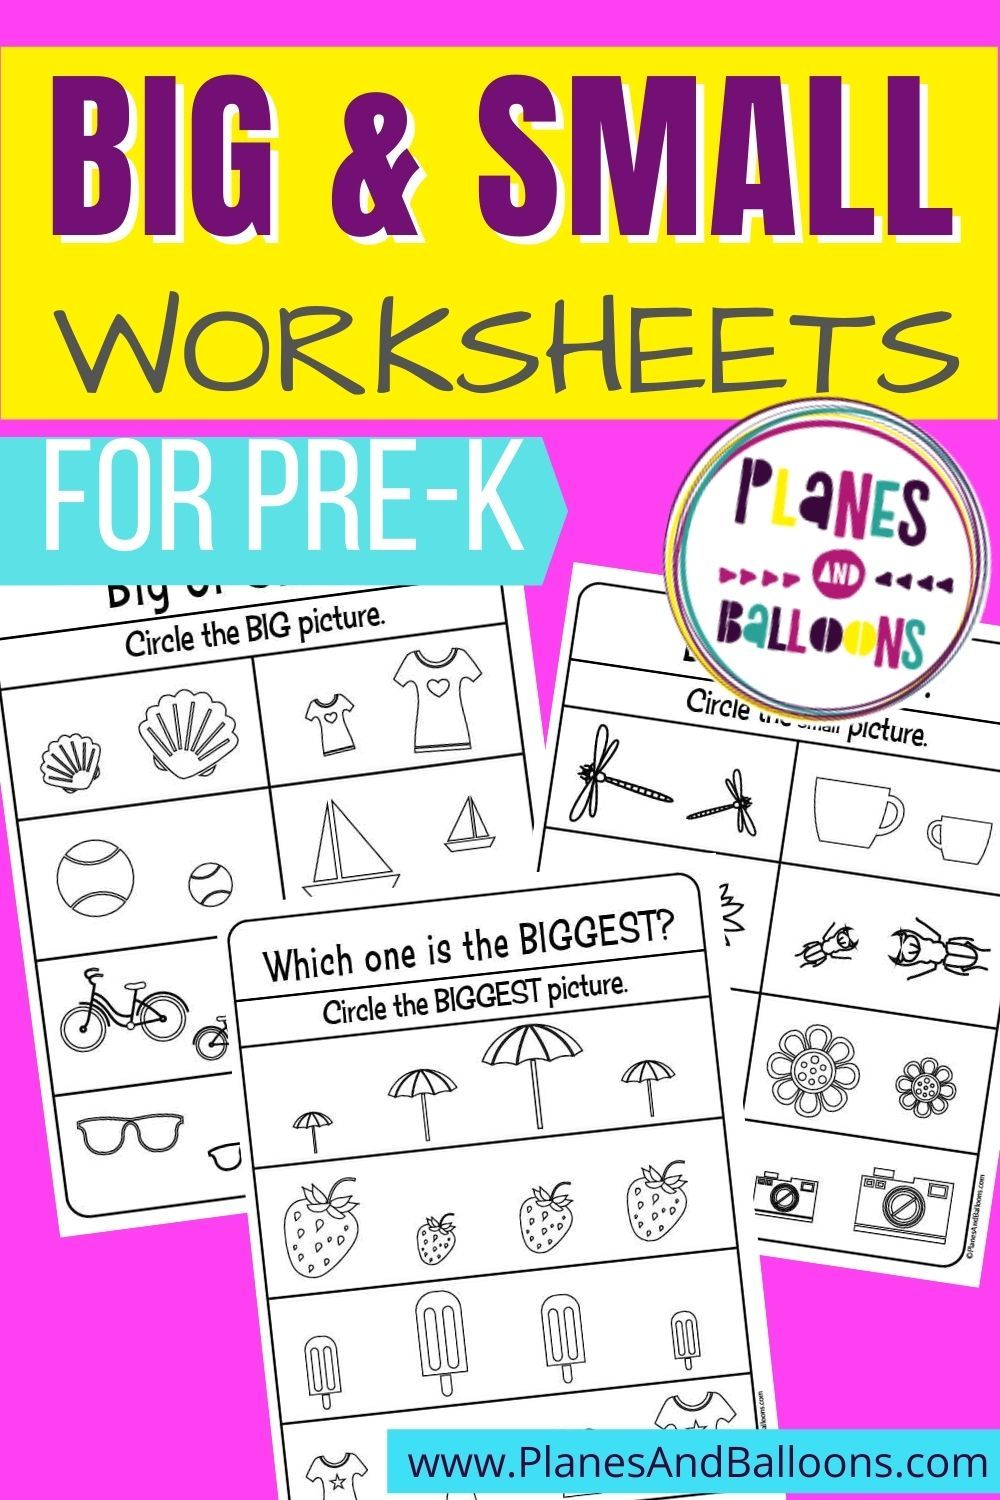 Big And Small Worksheets Size Comparison Planes Balloons In 2021 Free Homeschool Curriculum Free Preschool Early Math [ 1500 x 1000 Pixel ]